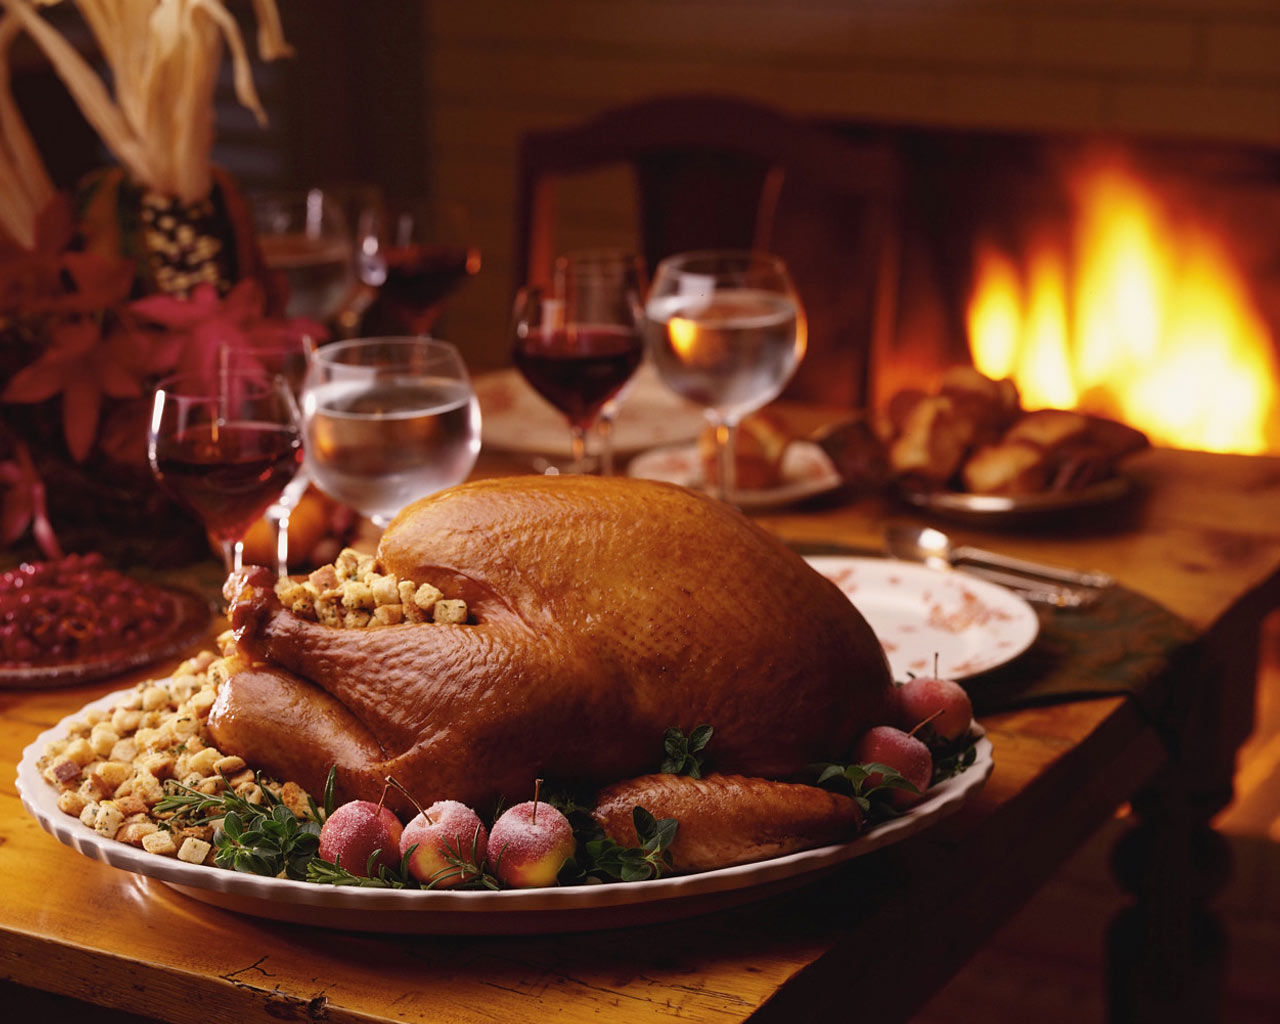 A lesson in forgiveness at Thanksgiving time